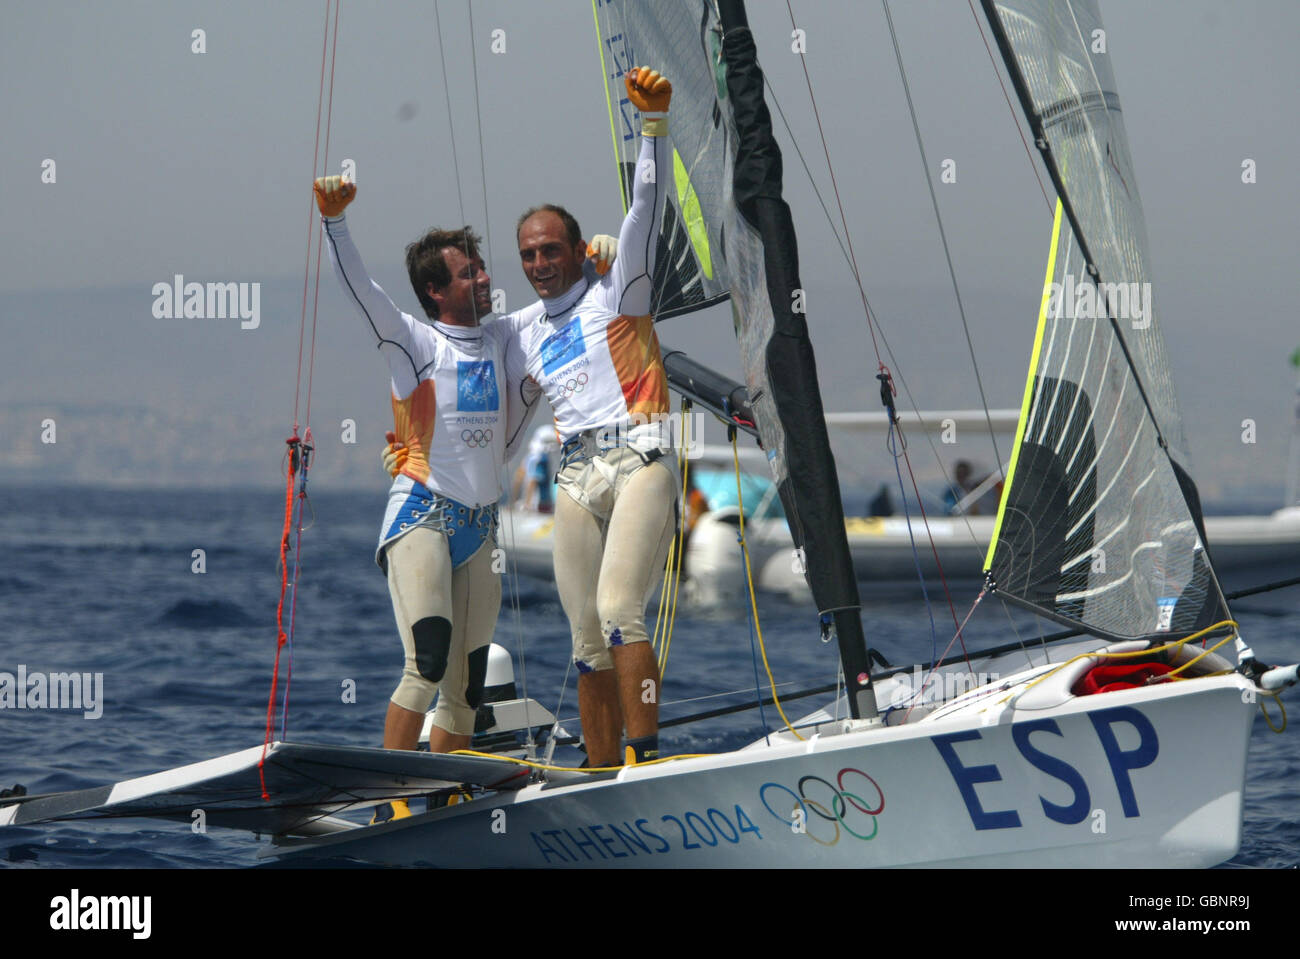 Sailing - Athens Olympic Games 2004 - Open Double-Handed Dinghy-49er - Stock Image